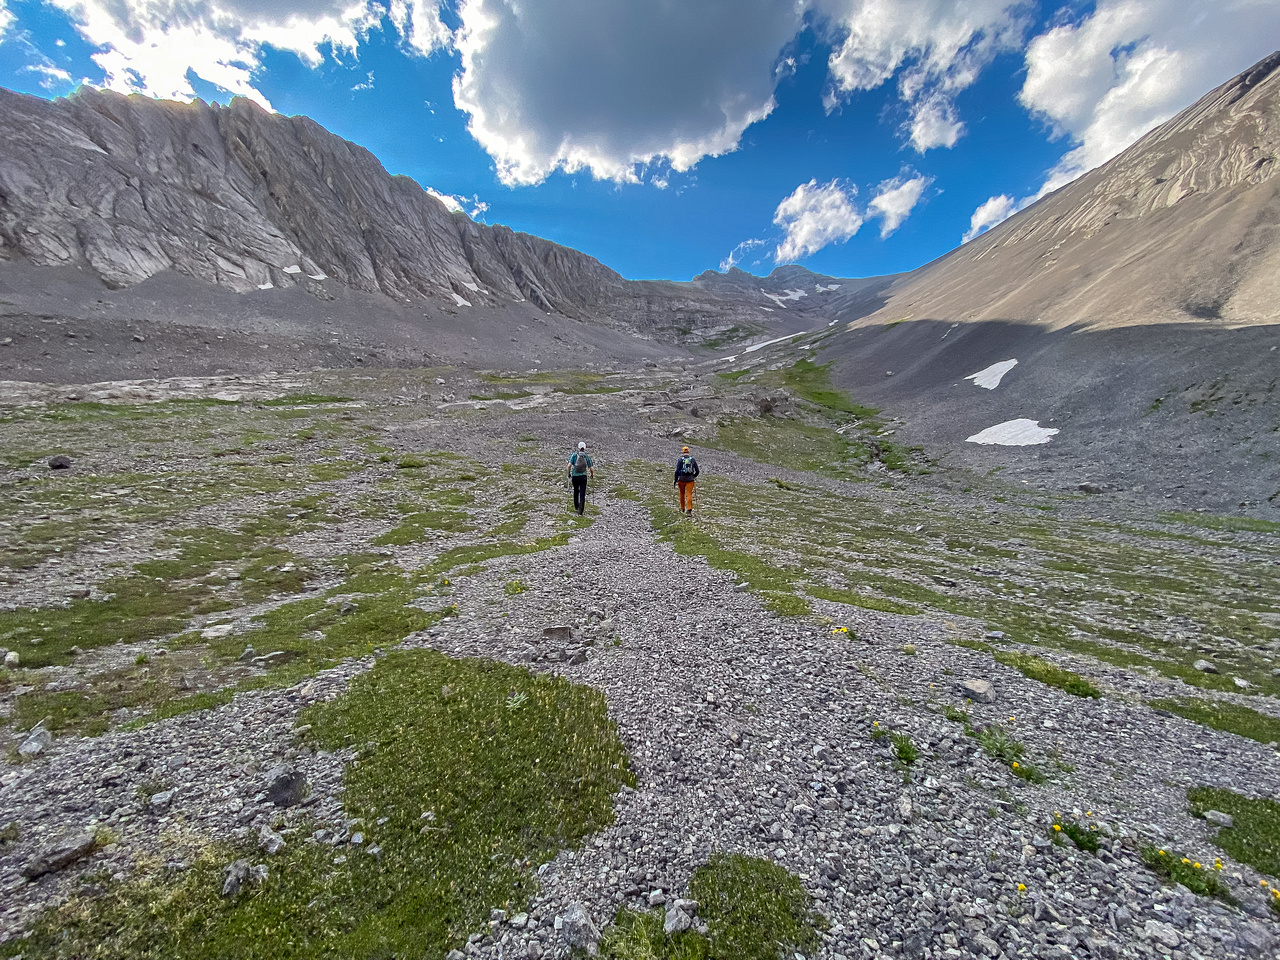 Hiking up the lower SE slopes of Mount Turbulent above the upper lake.